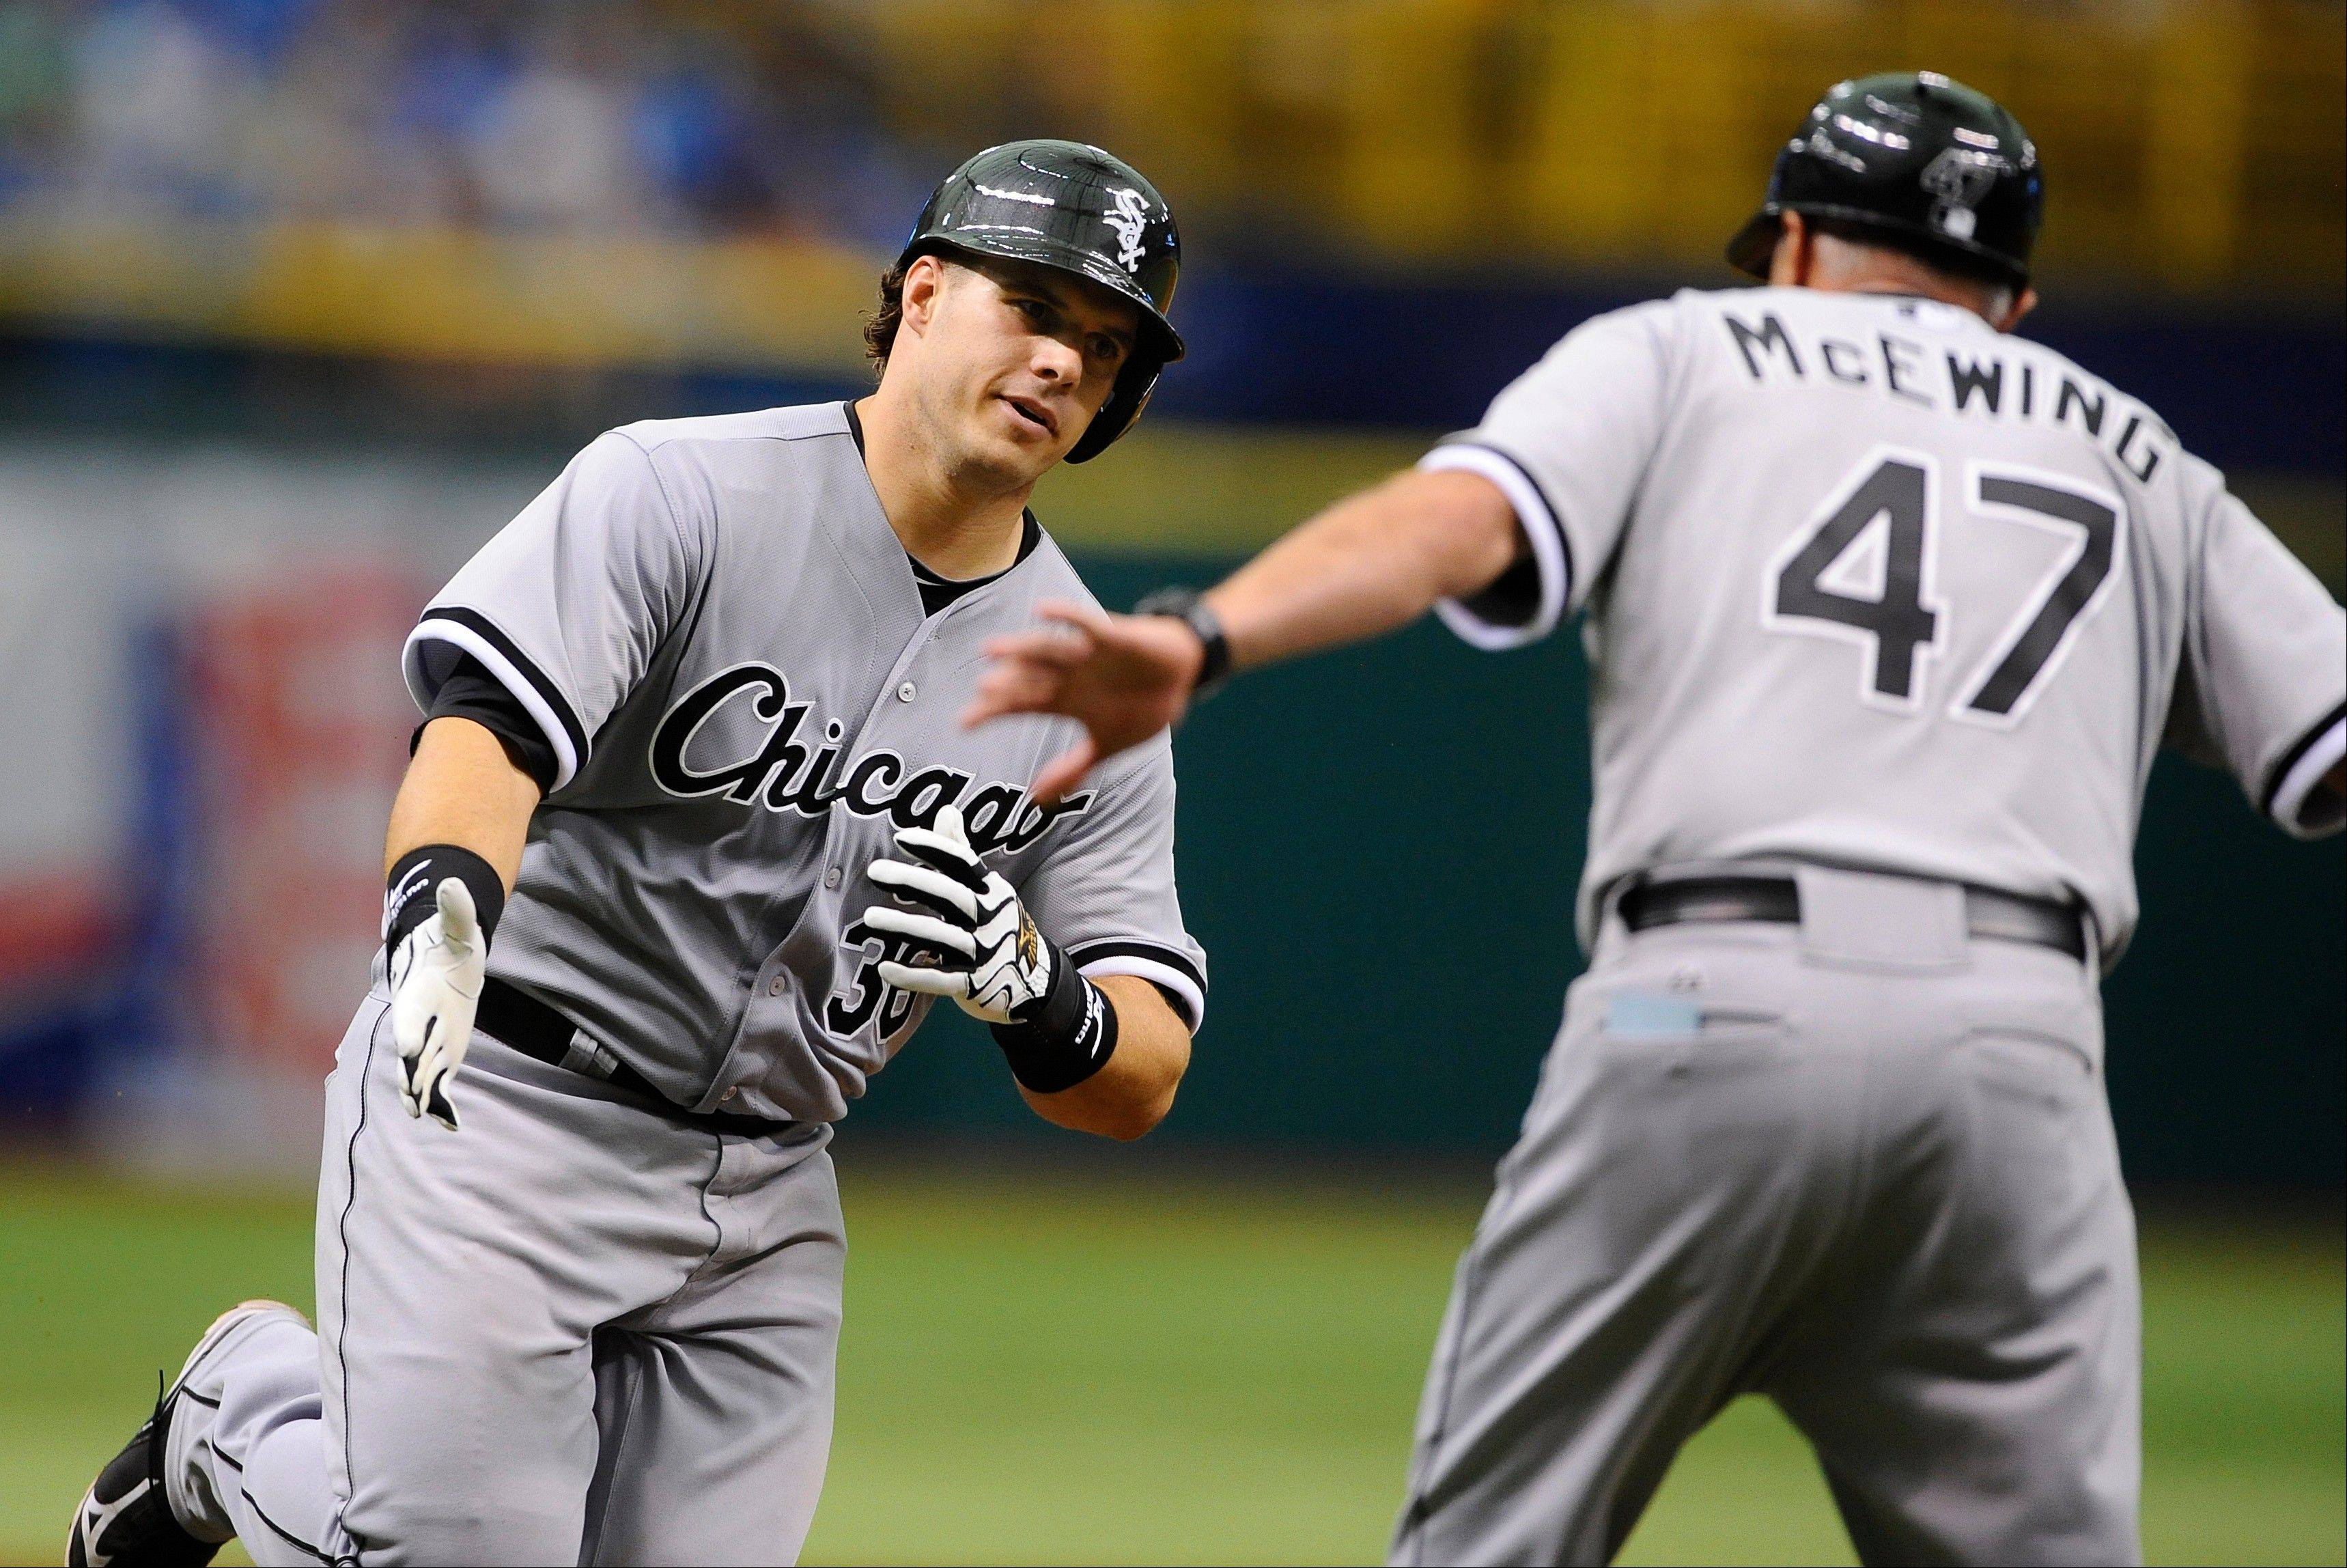 White Sox newbie Josh Phegley, left, celebrates with third base coach Joe McEwing while rounding the bases after hitting a home run off Tampa Bay Rays starting pitcher David Price during Sunday's sixth inning.